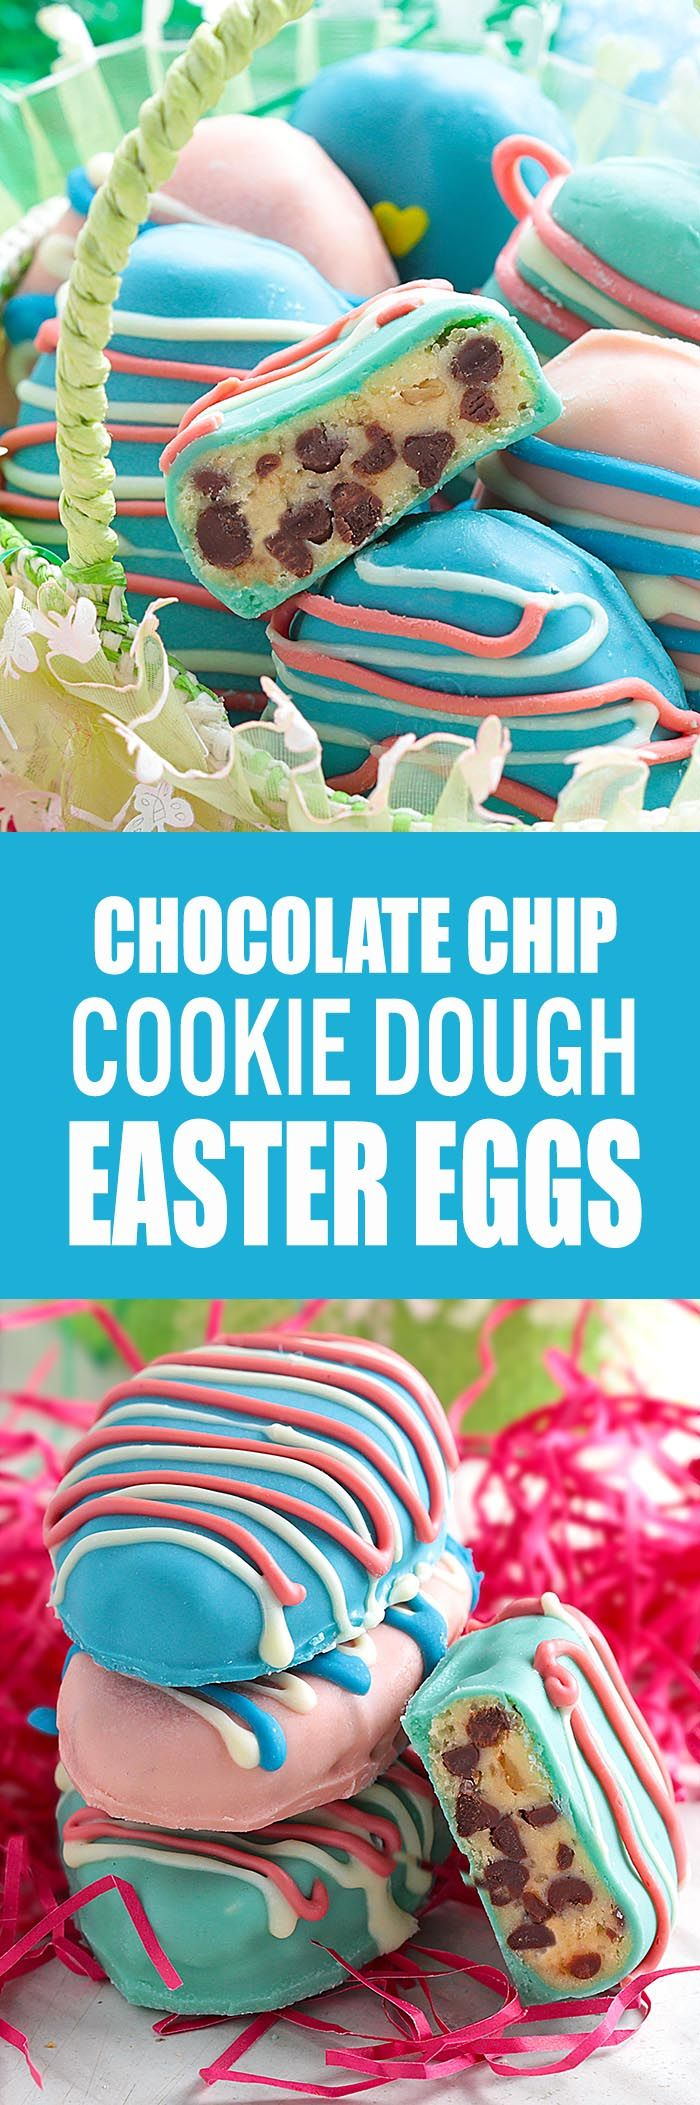 I promise that no one will be disappointed if they find these Easter Egg Cookie Dough Truffles in their baskets Easter morning!